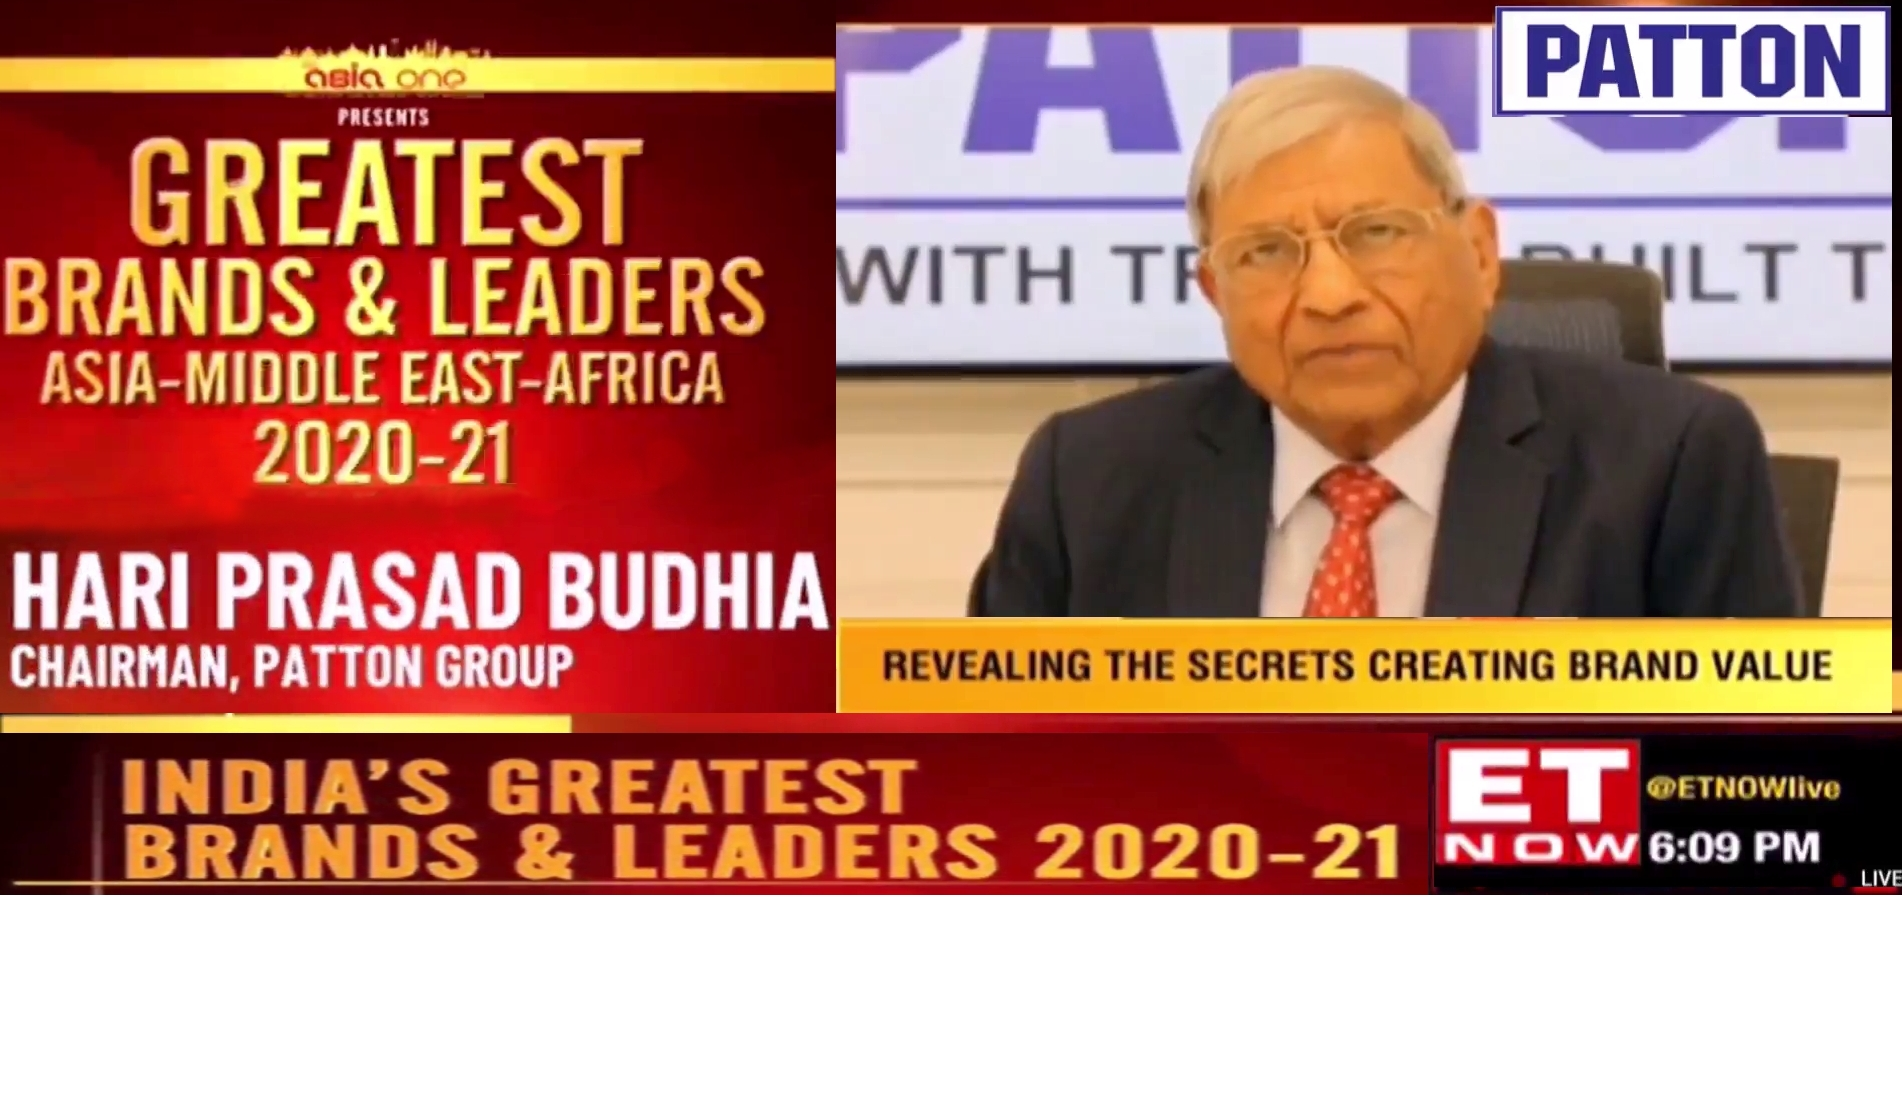 Chairman H P Budhia nominated for India's Greatest Brands & Leaders 2020-21 Award